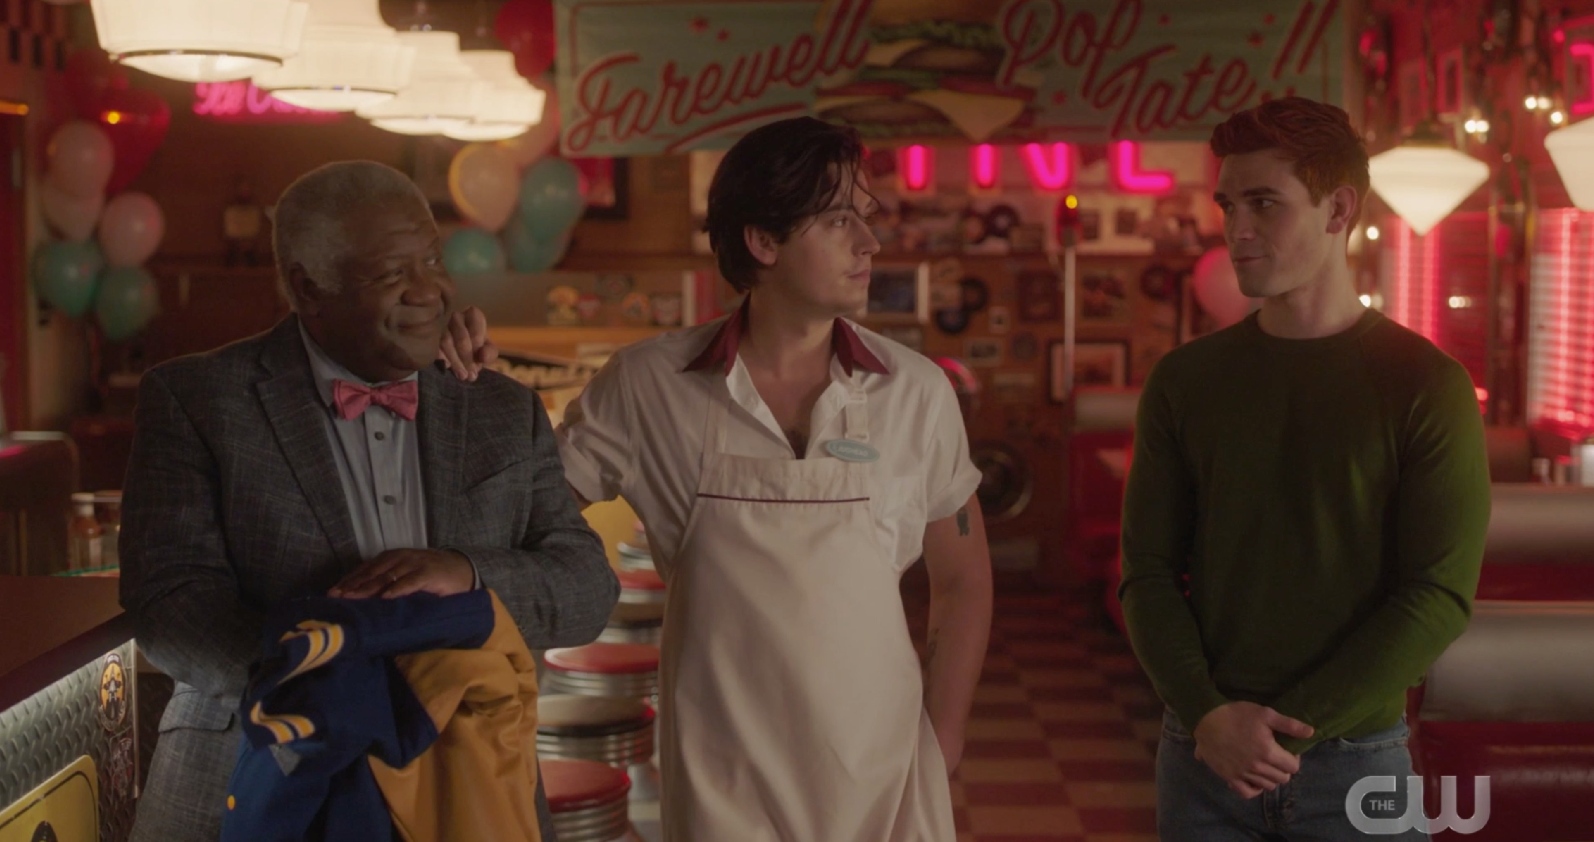 Archie, Jughead and Pop Tate